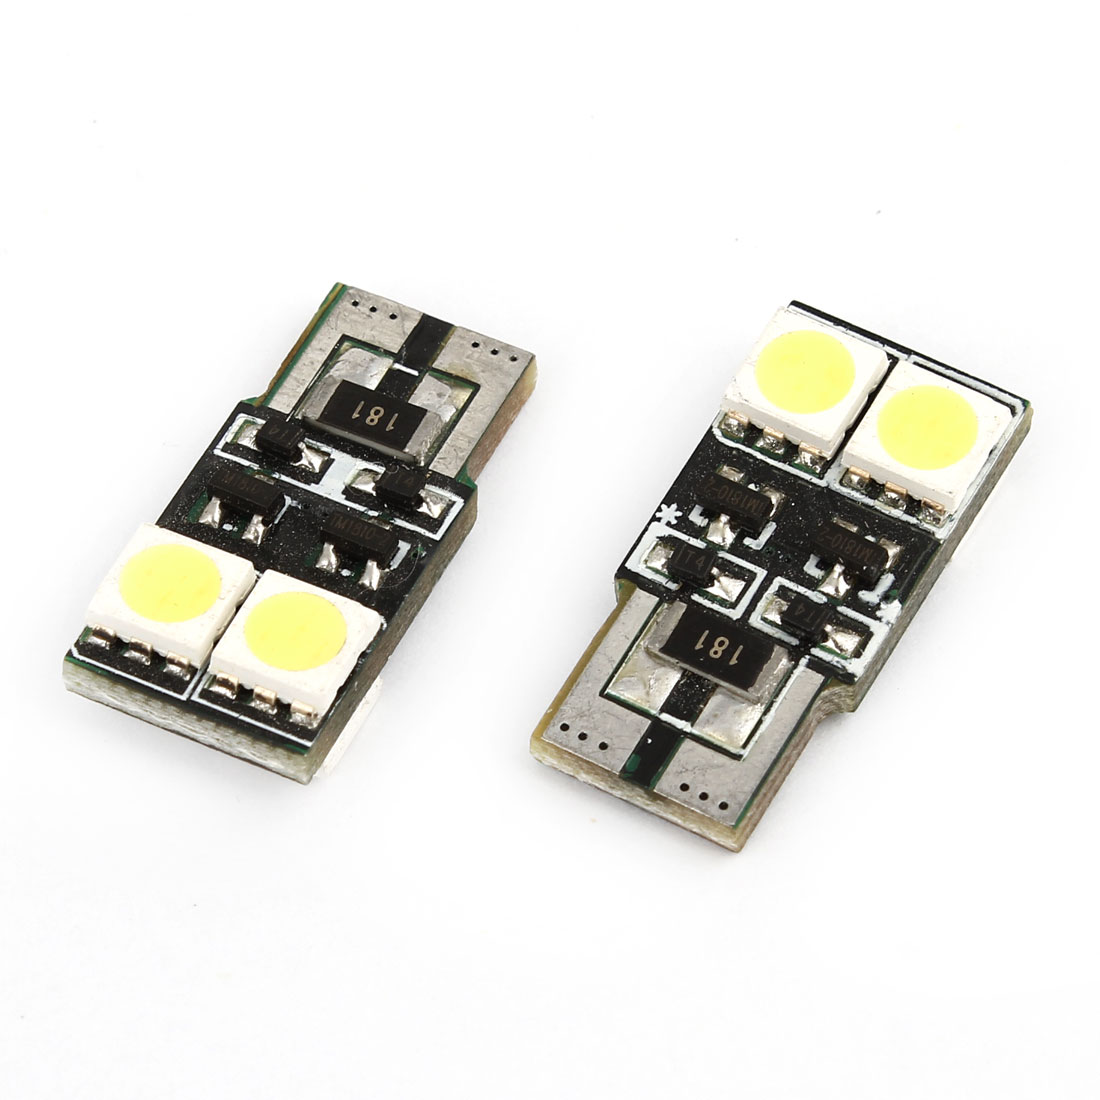 2 Pcs T10 White 5050 SMD 4 LED Car Dashboard Light Signal Turning Lamp Internal